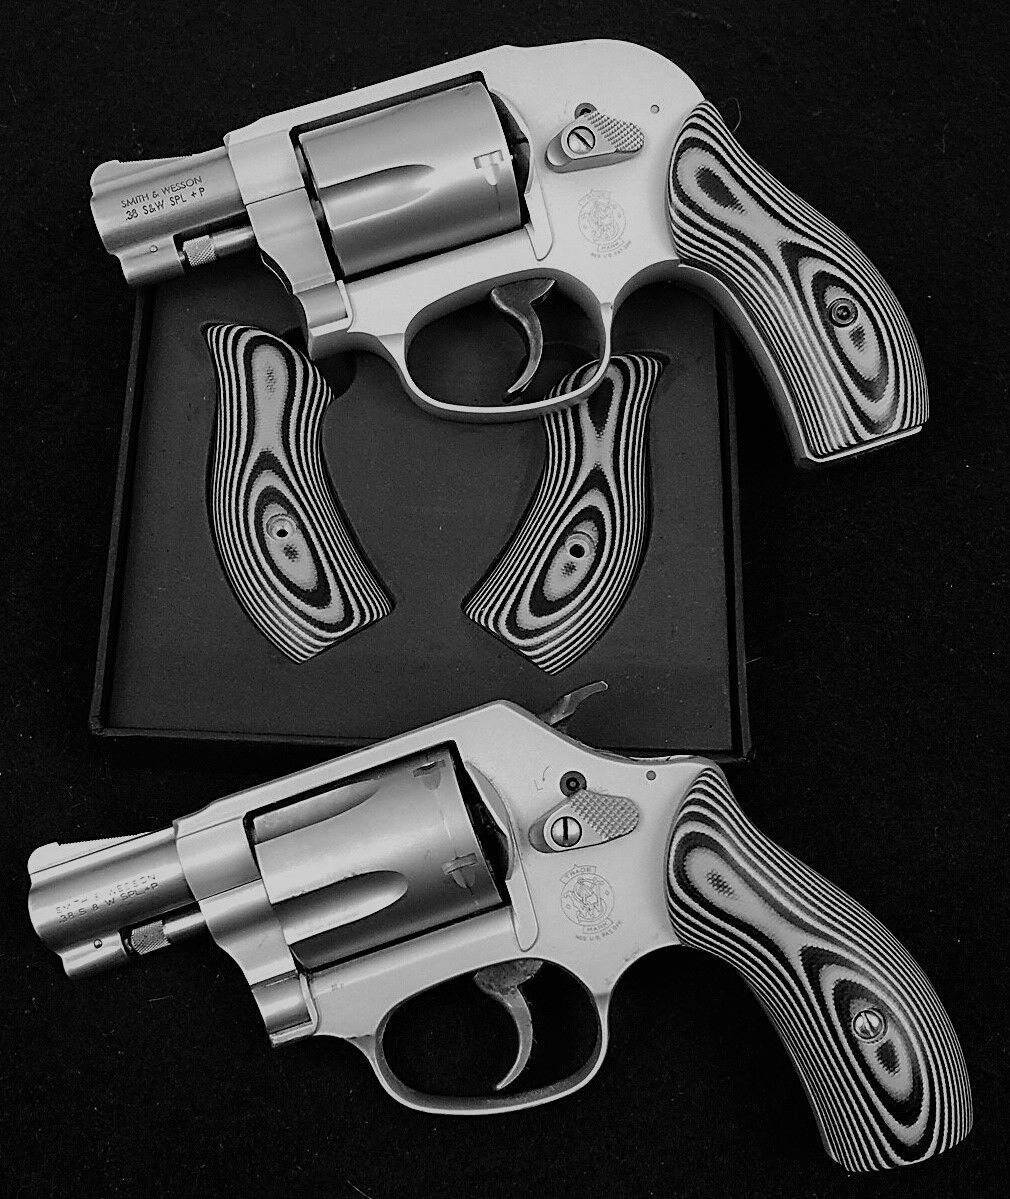 J Frame Grips Fits Most Smith & Wesson S&w G10 Layered STUNNING | eBay